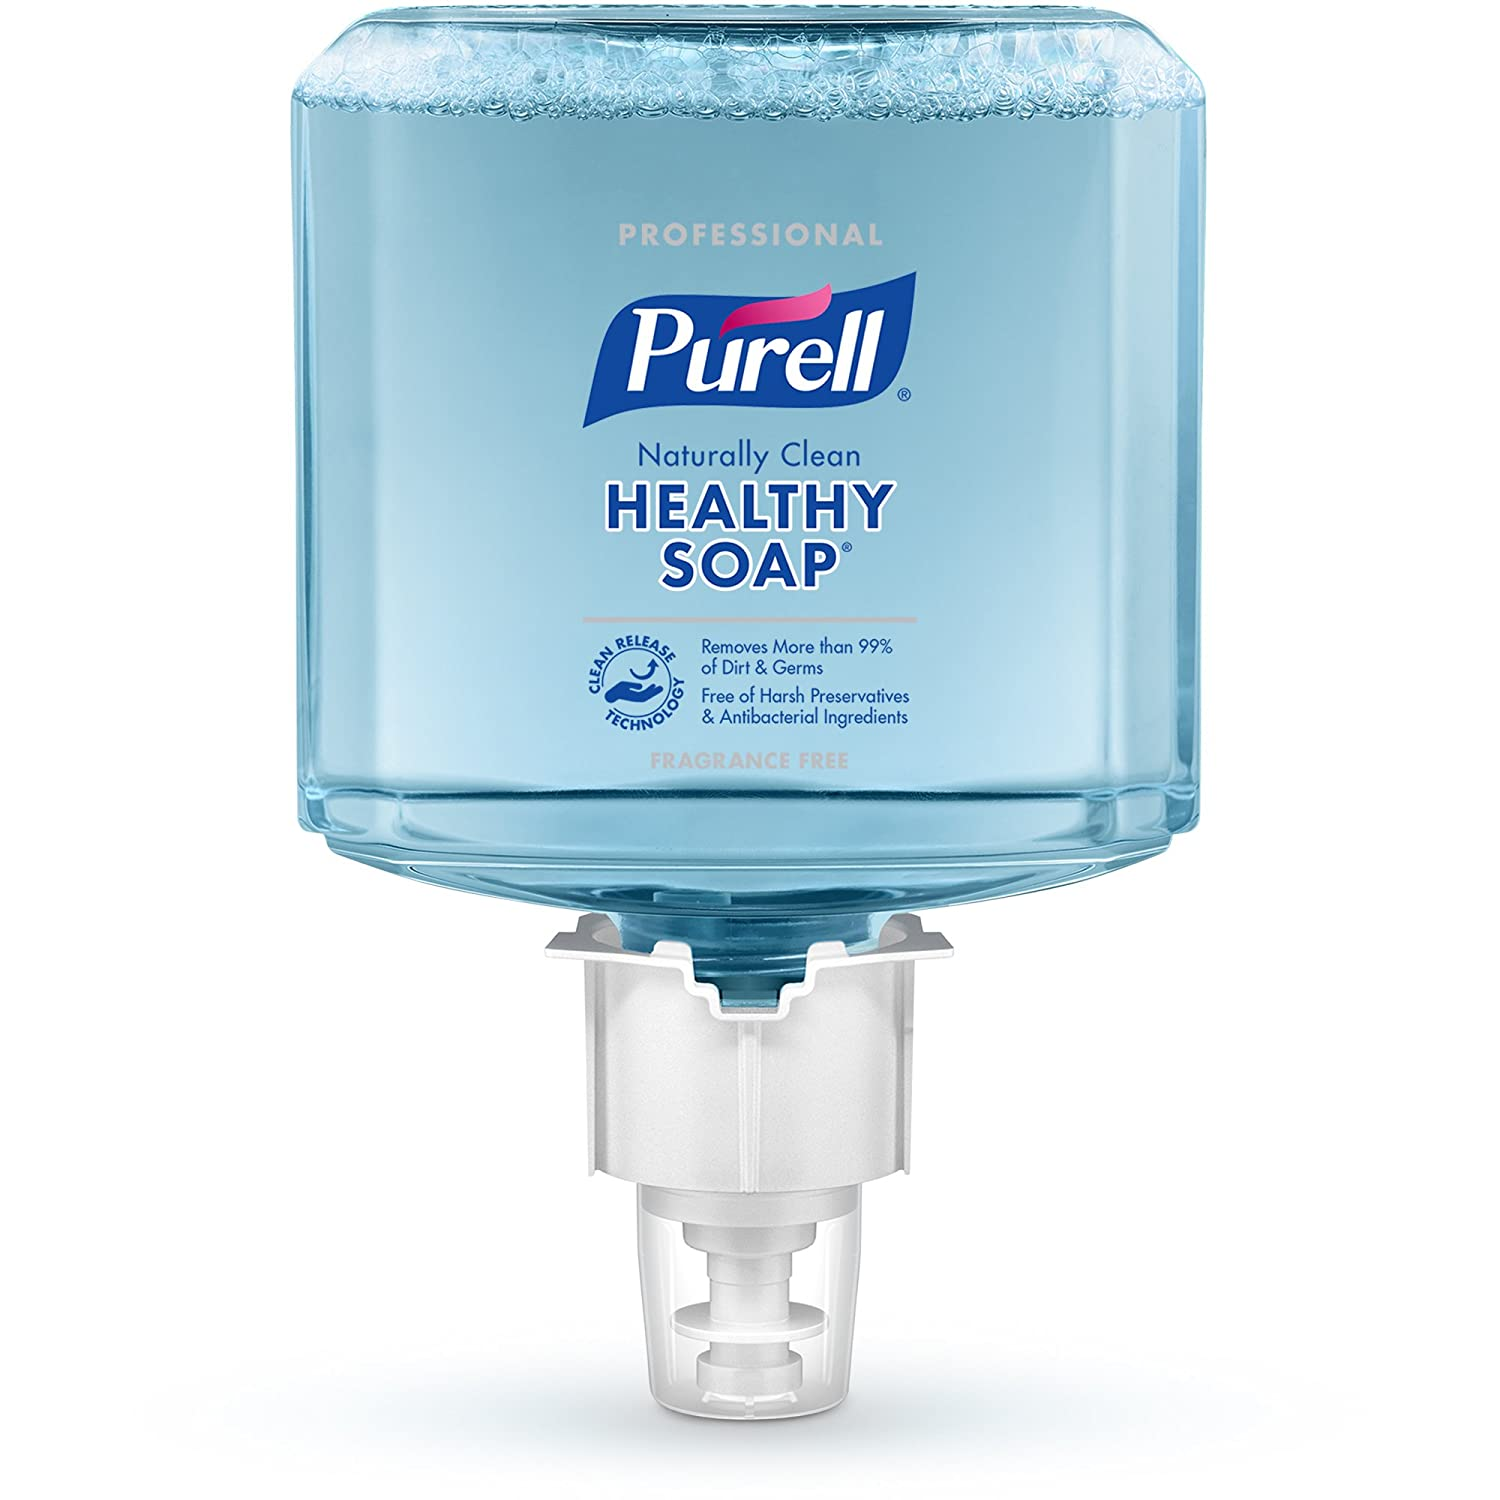 PURELL ES6 Professional HEALTHY SOAP Naturally Clean Foam Refill, Fragrance Free, 1200 mL EcoLogo Certified Soap Refill for PURELL ES6 Touch-Free Dispenser (Pack of 2) - 6470-02,Blue